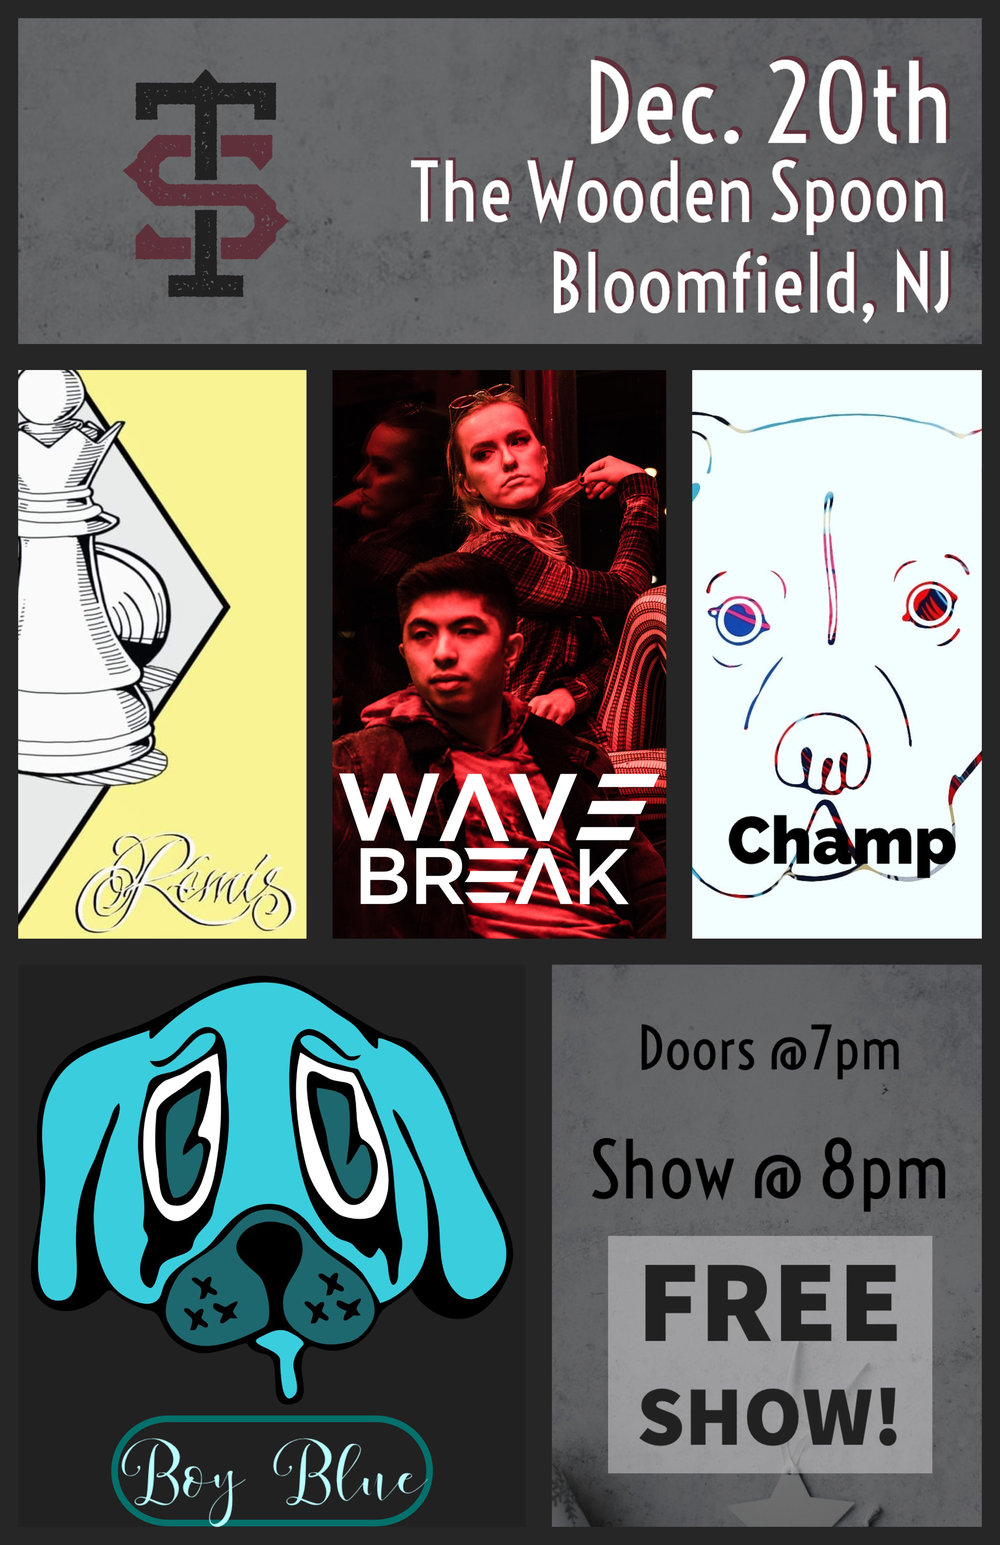 Dec 20 Concert at The Wooden Spoon in Bloomfield New Jersey 8pm Free Show.jpg